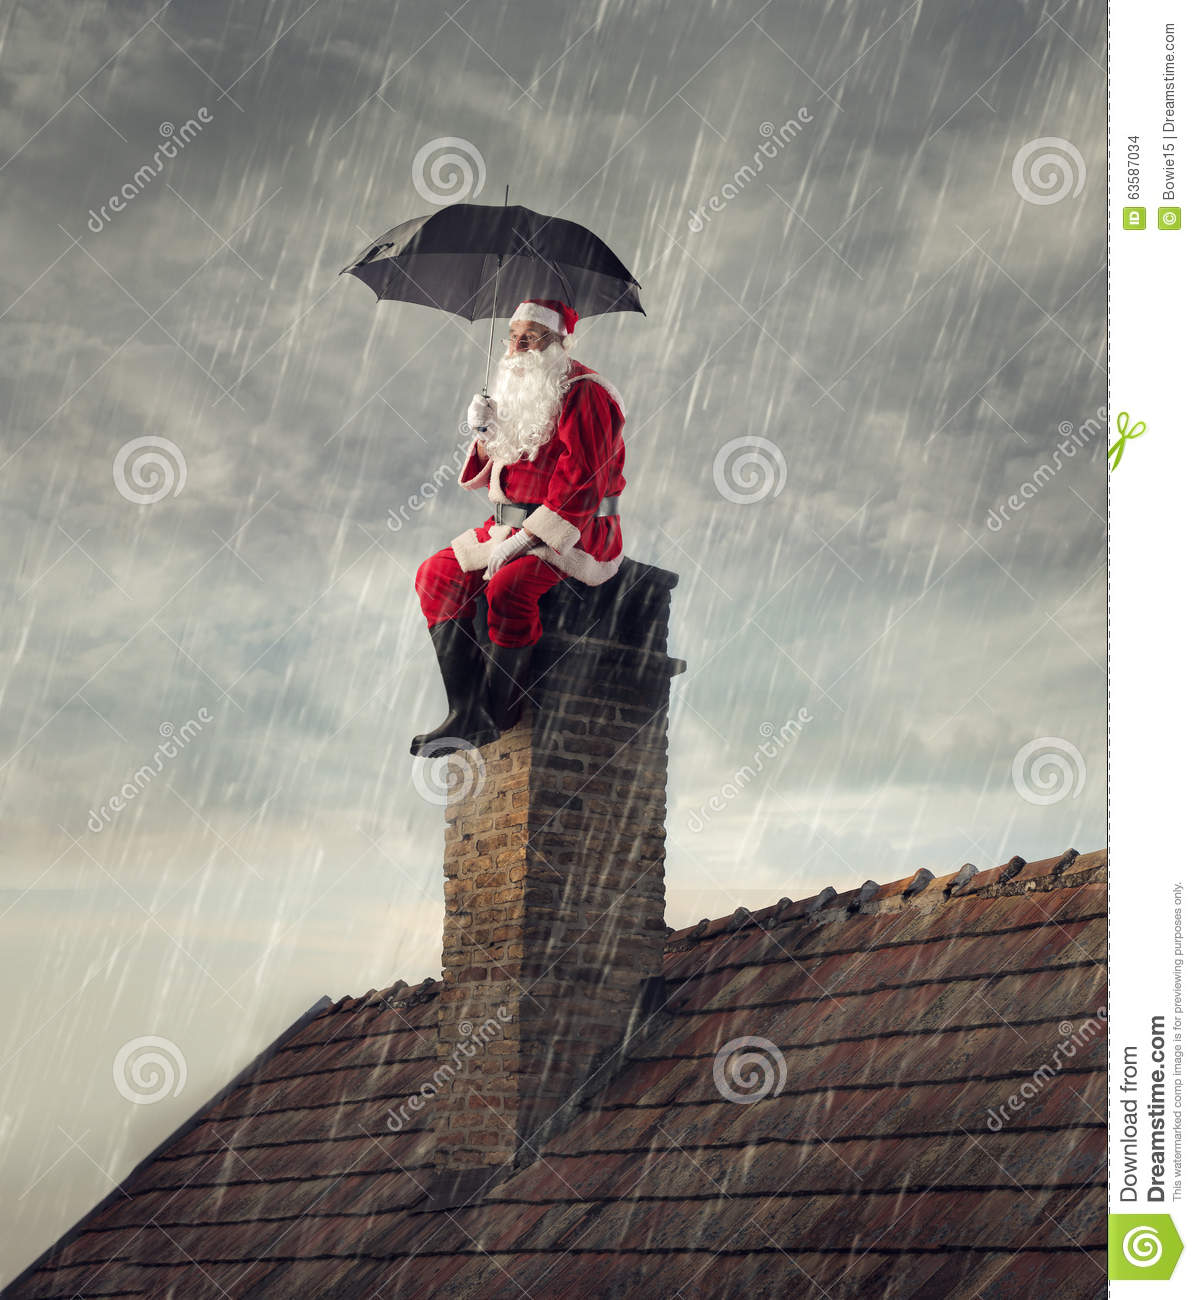 Santa Claus Under The Rain Stock Photo Image 63587034